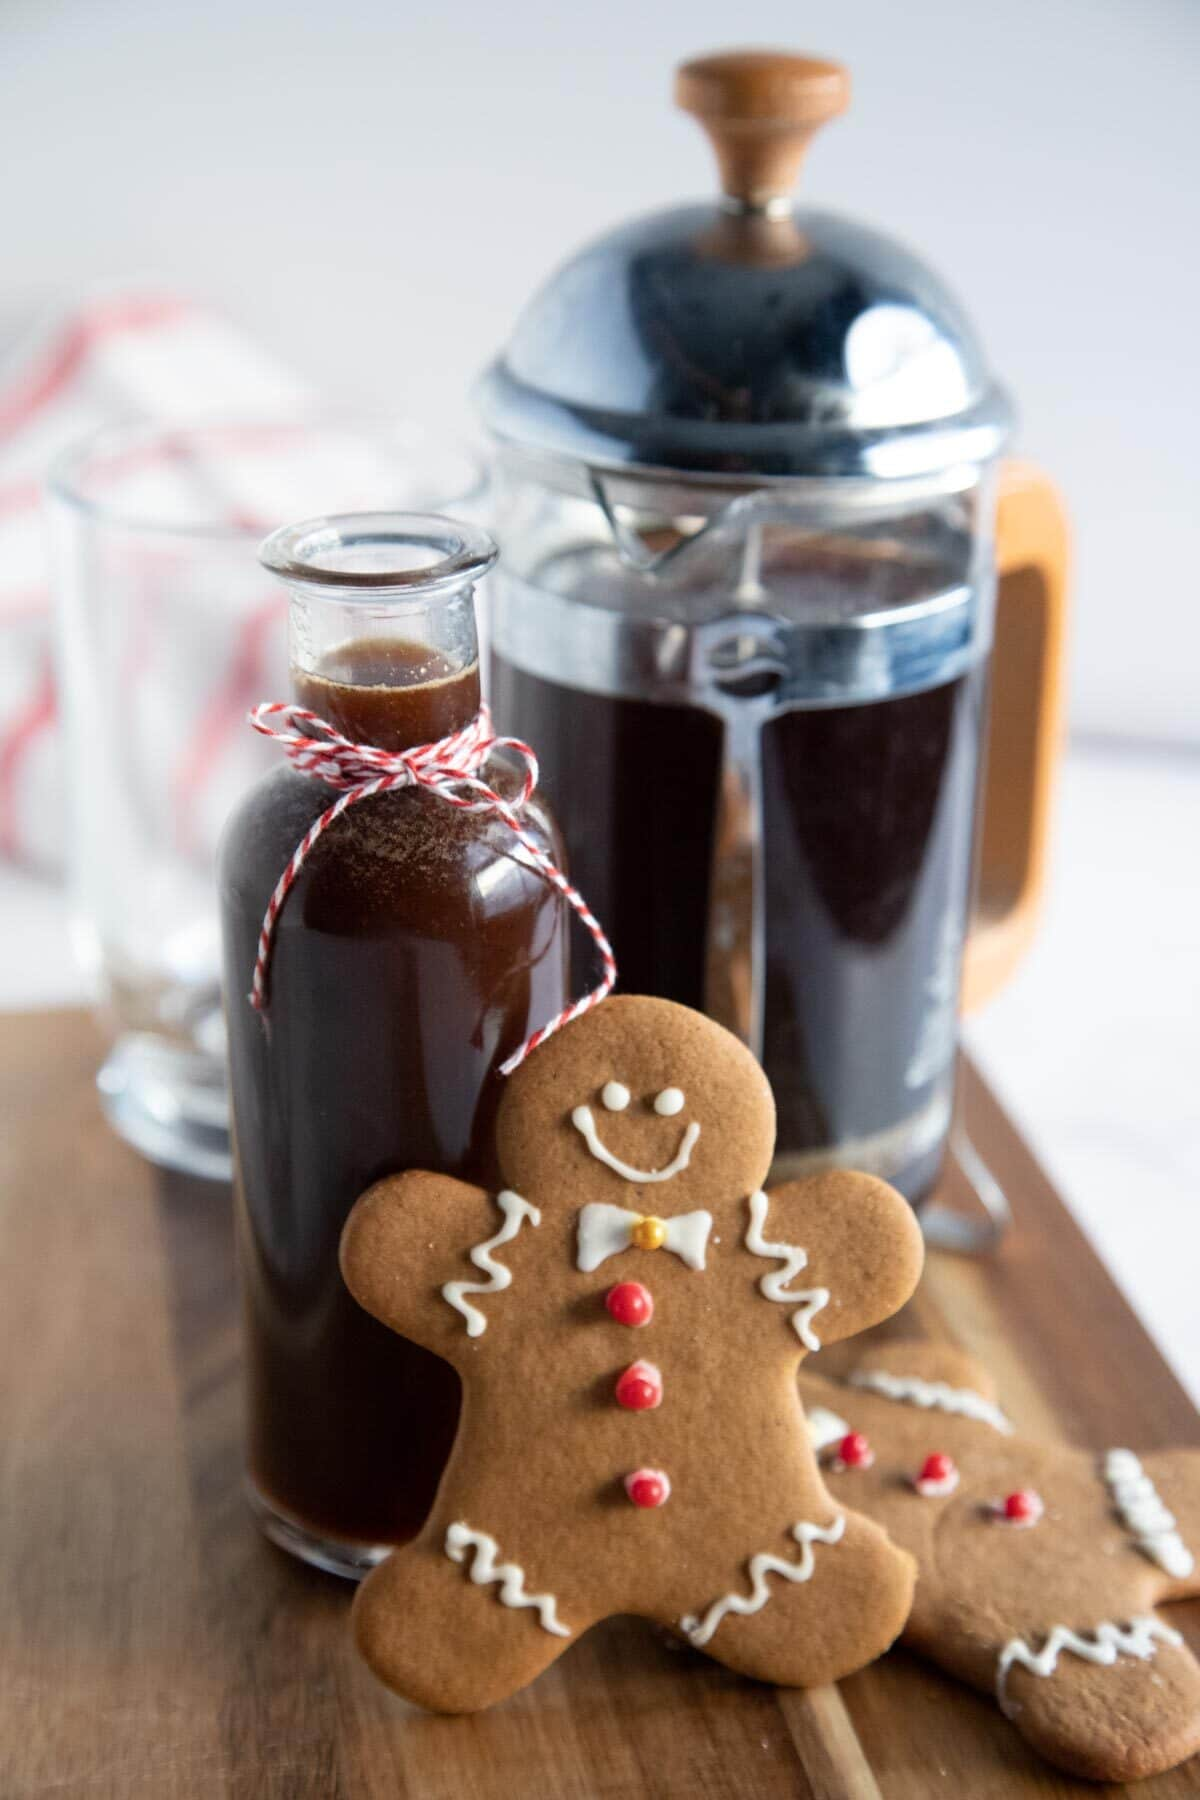 gingerbread syrup in a bottle with gingerbread man